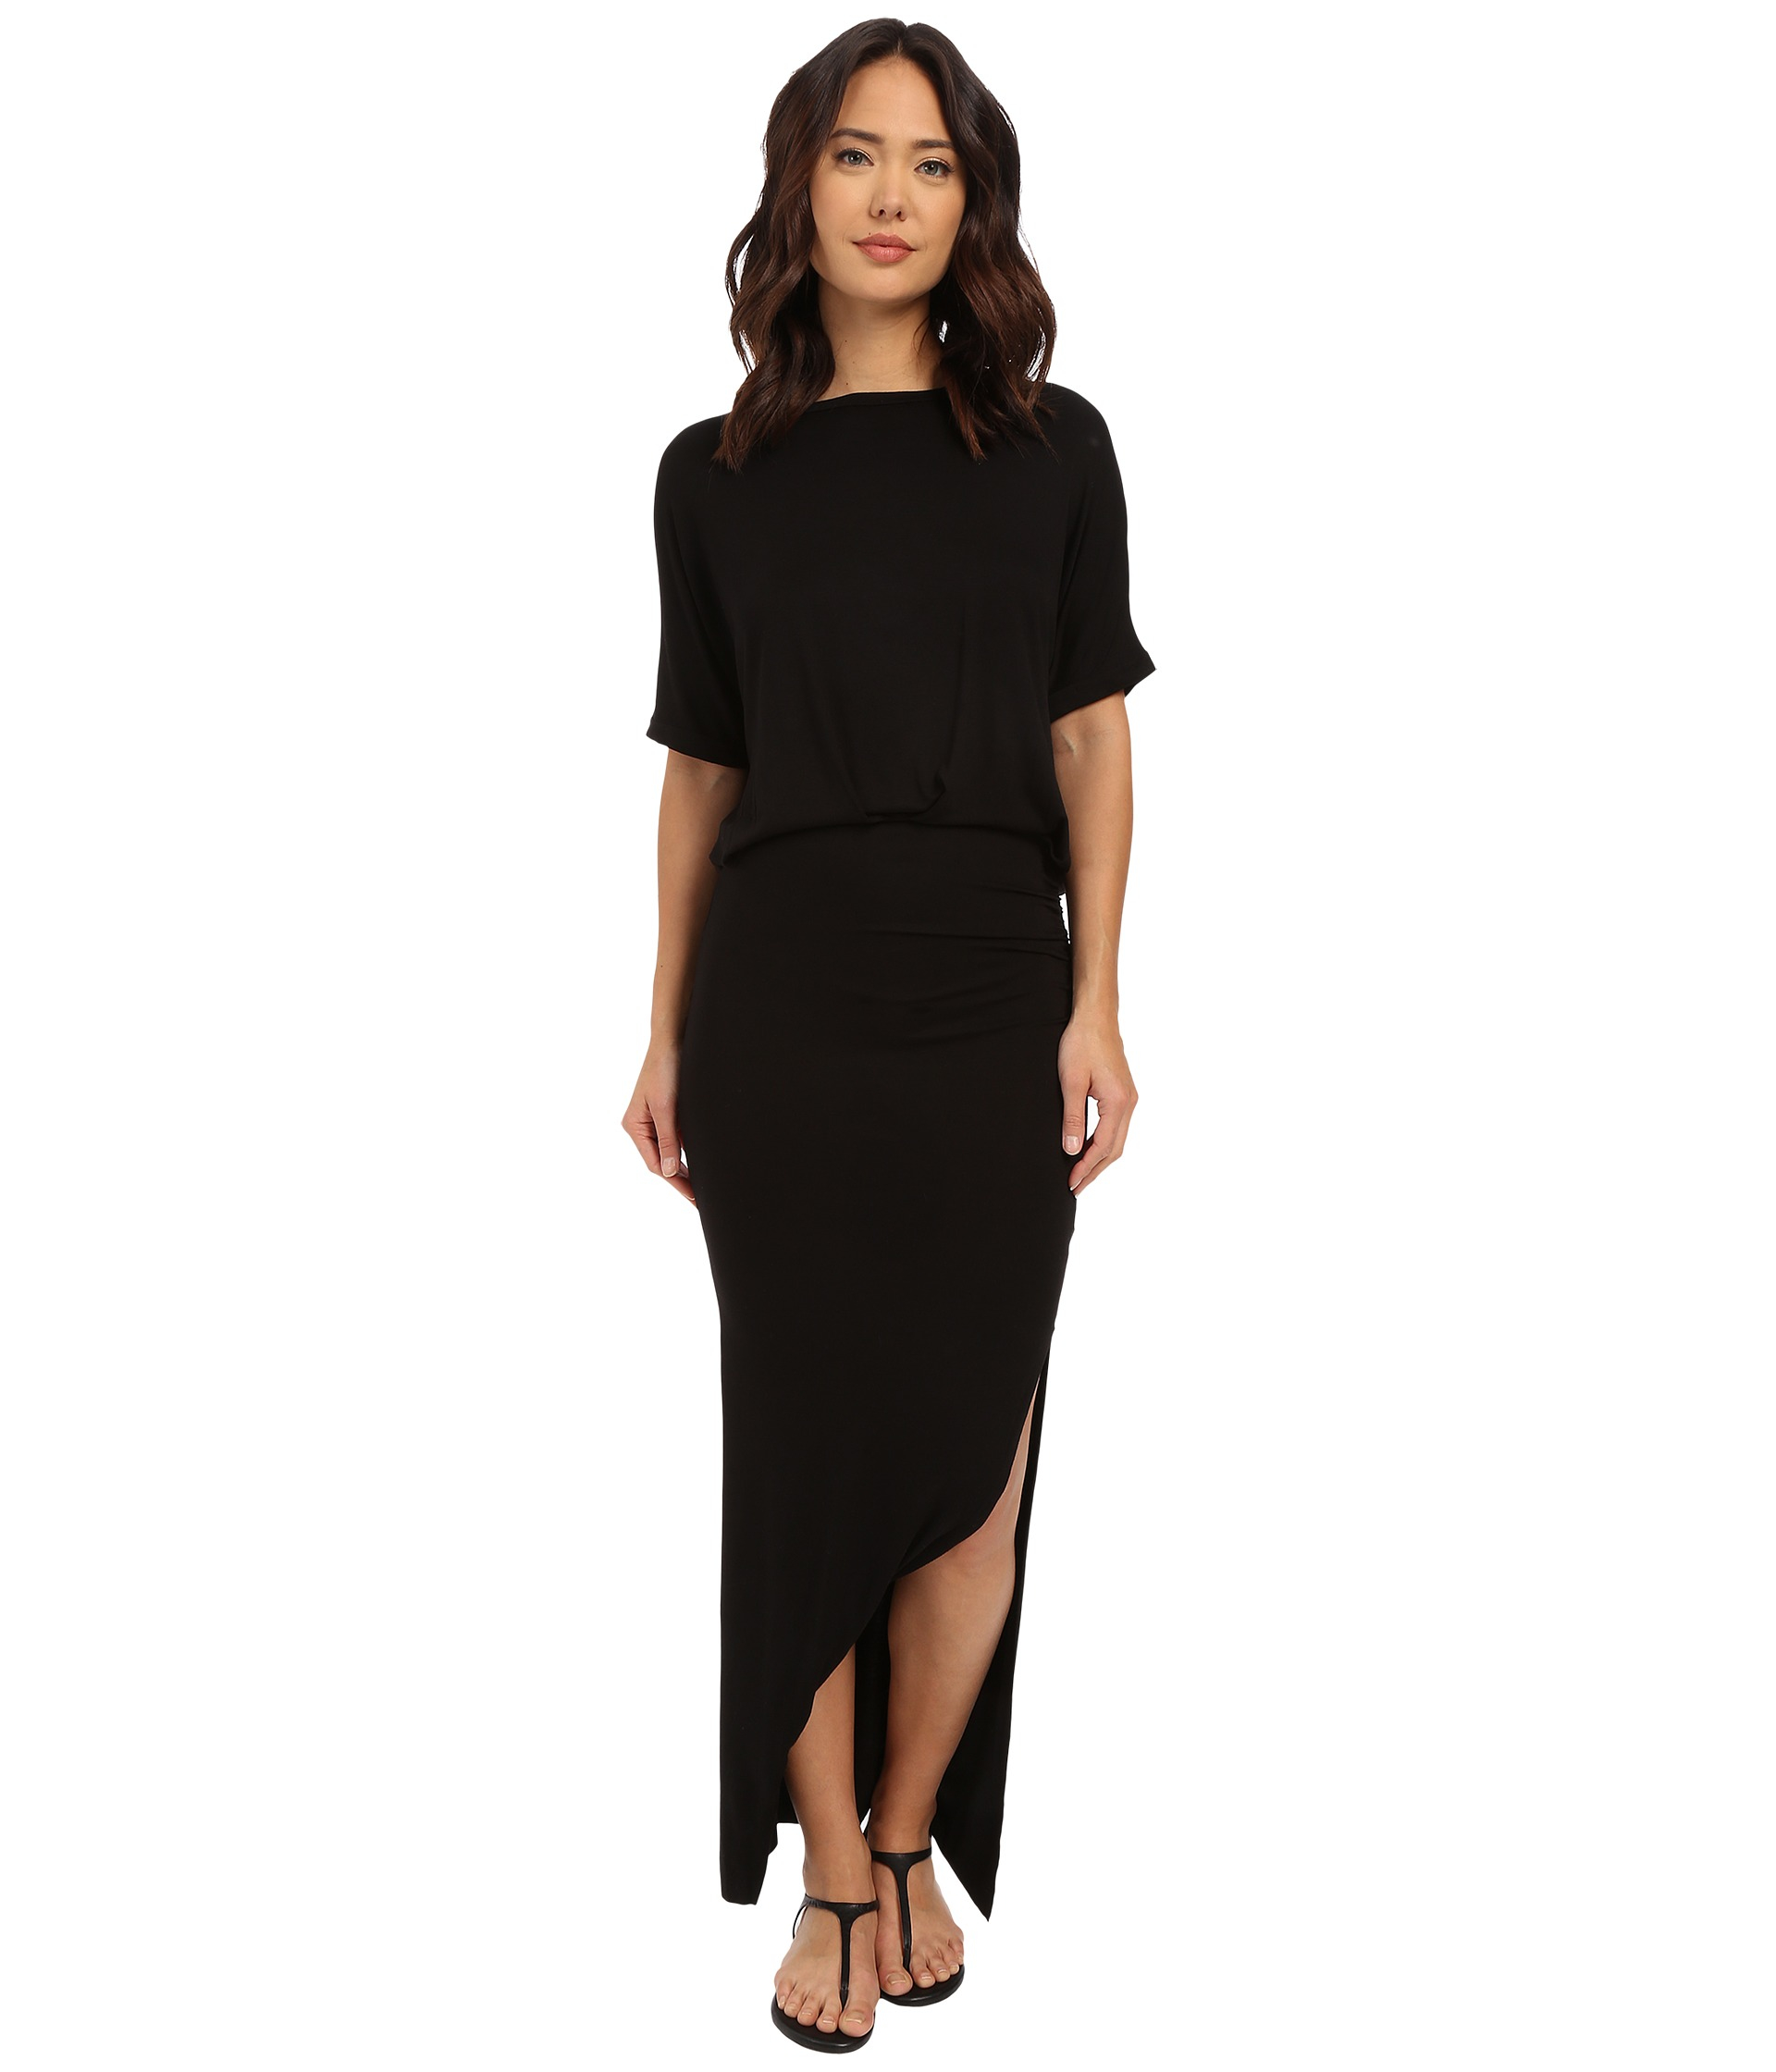 The best thing about maxi and midi dresses is they're often elegant on their own, particularly when paired with the perfect heels or wedges. We're happy to report that our collection of maxi and midi dresses suits every size and style.